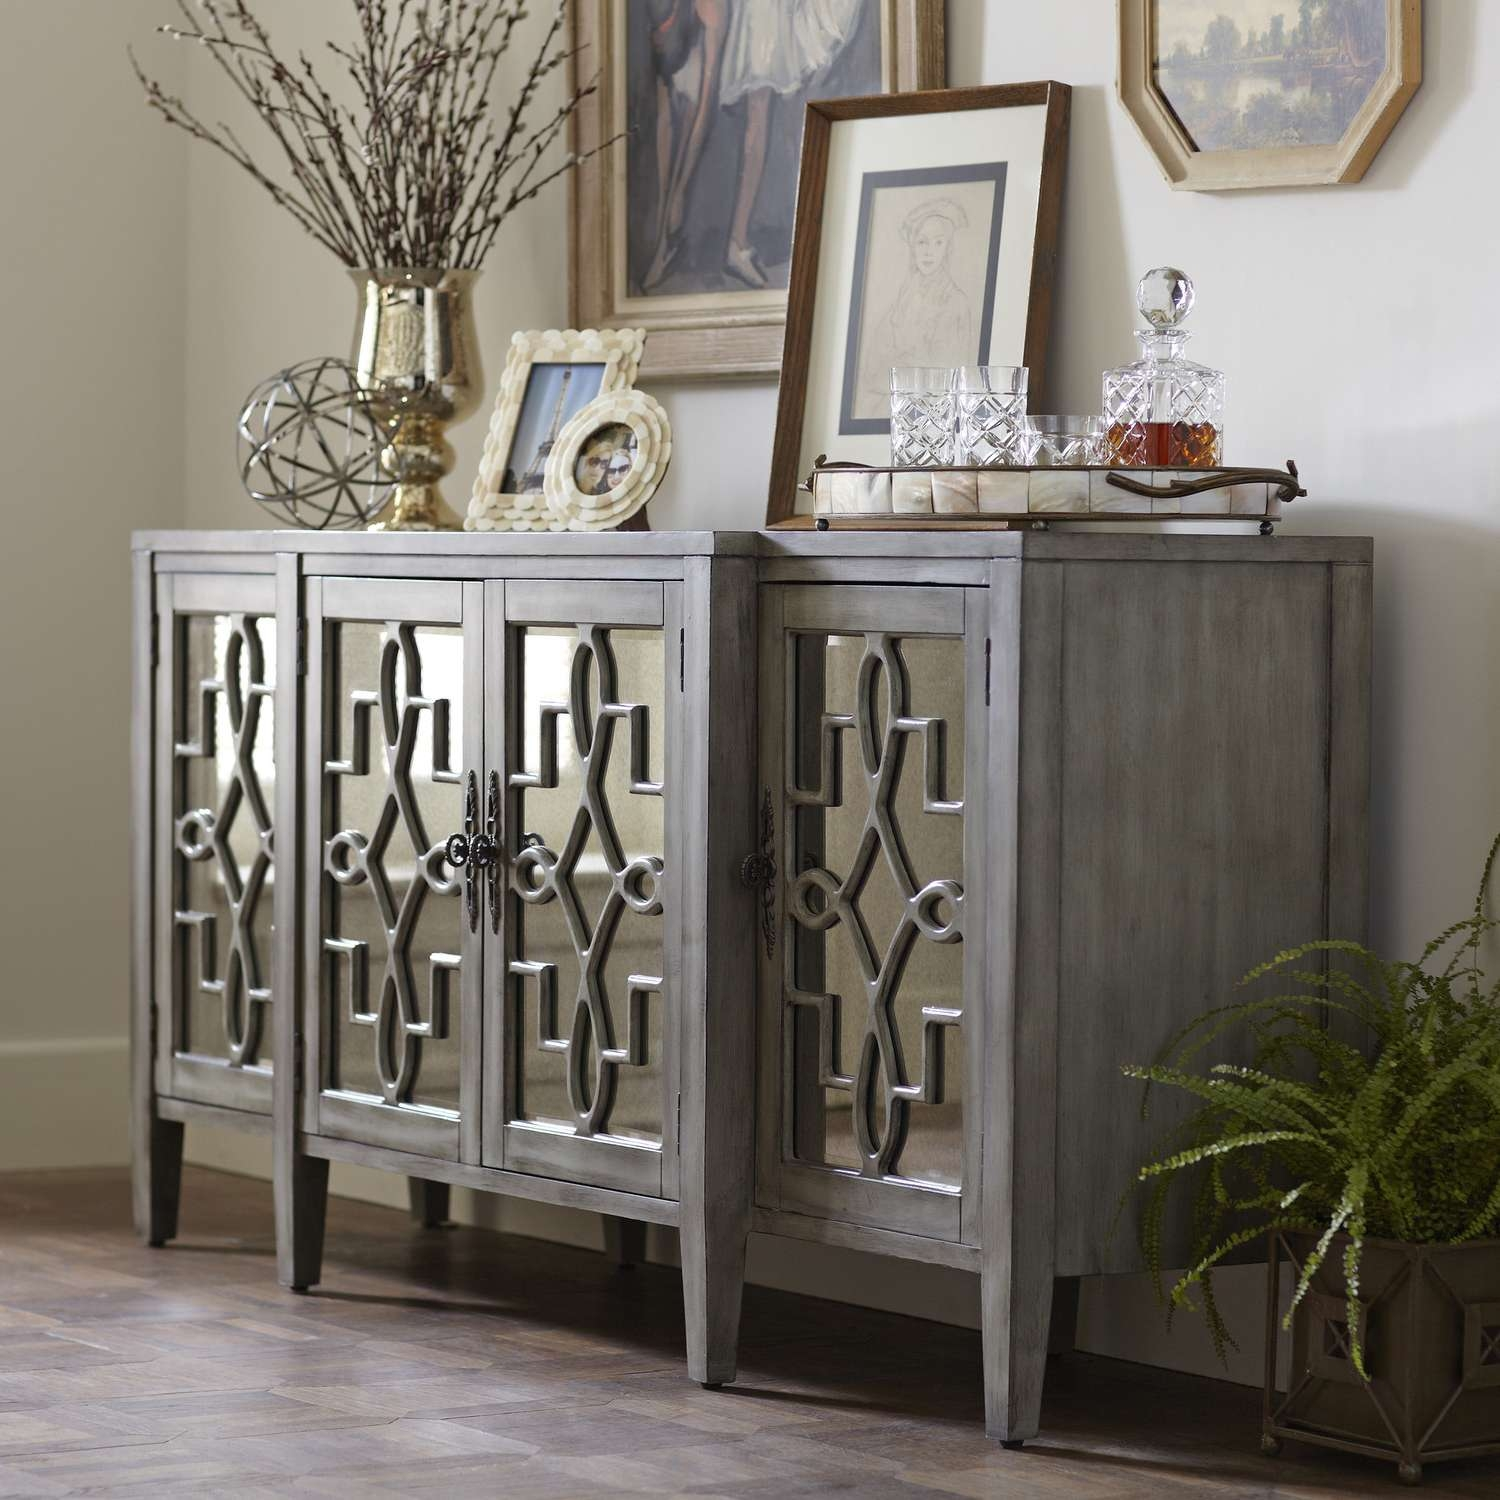 Beautiful Sideboard And Buffets – Bjdgjy Pertaining To Narrow Sideboards And Buffets (View 3 of 20)